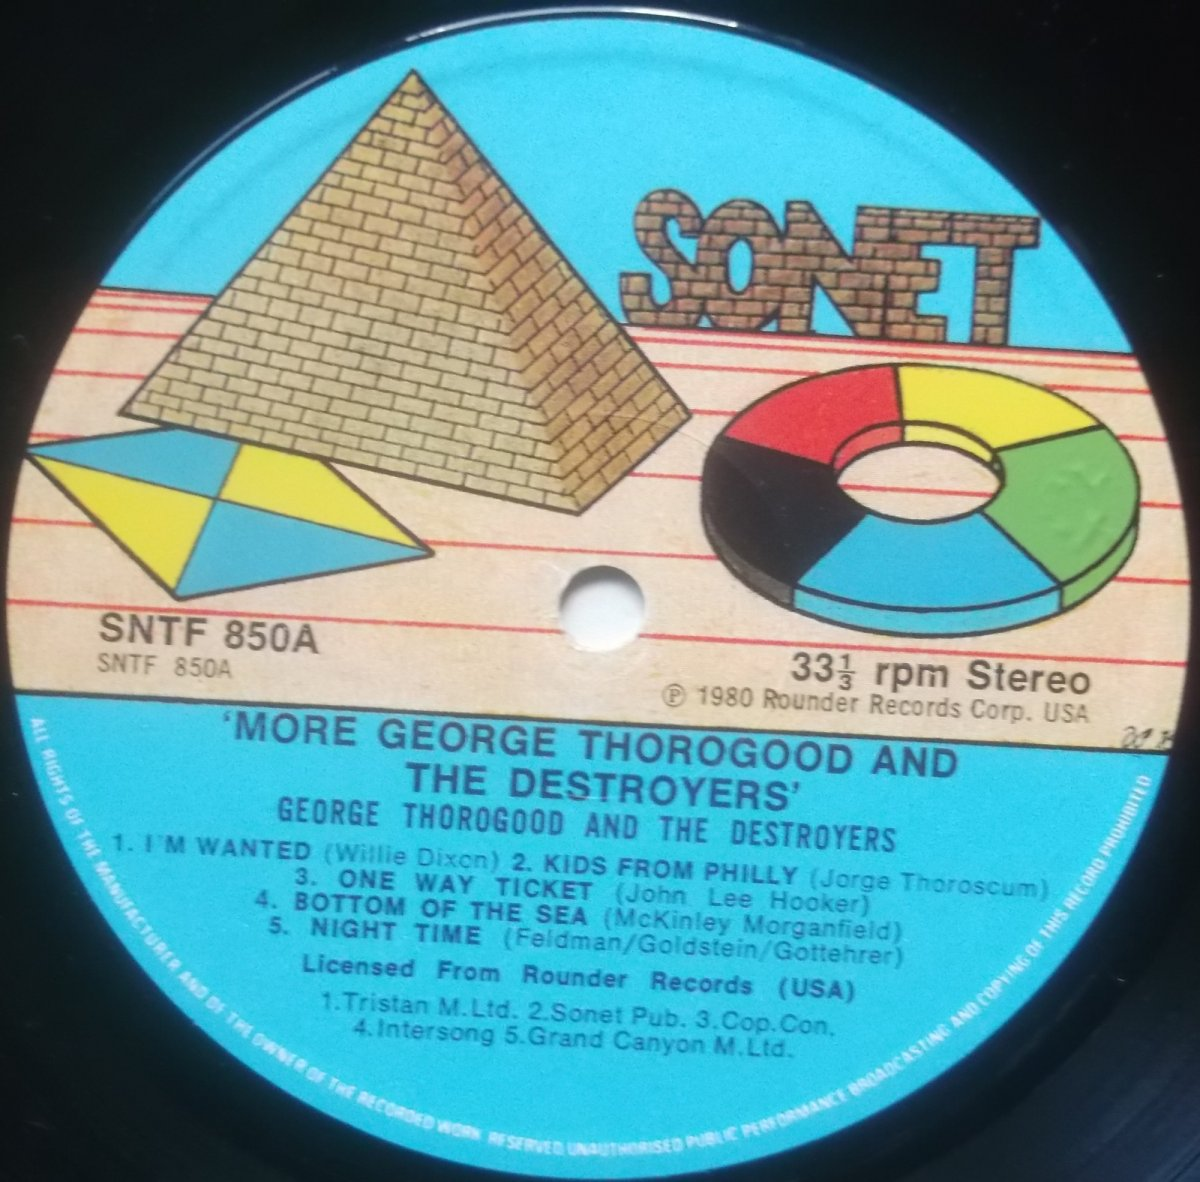 George Thorogood And The Destroyers – More George Thorogood And The Destroyers